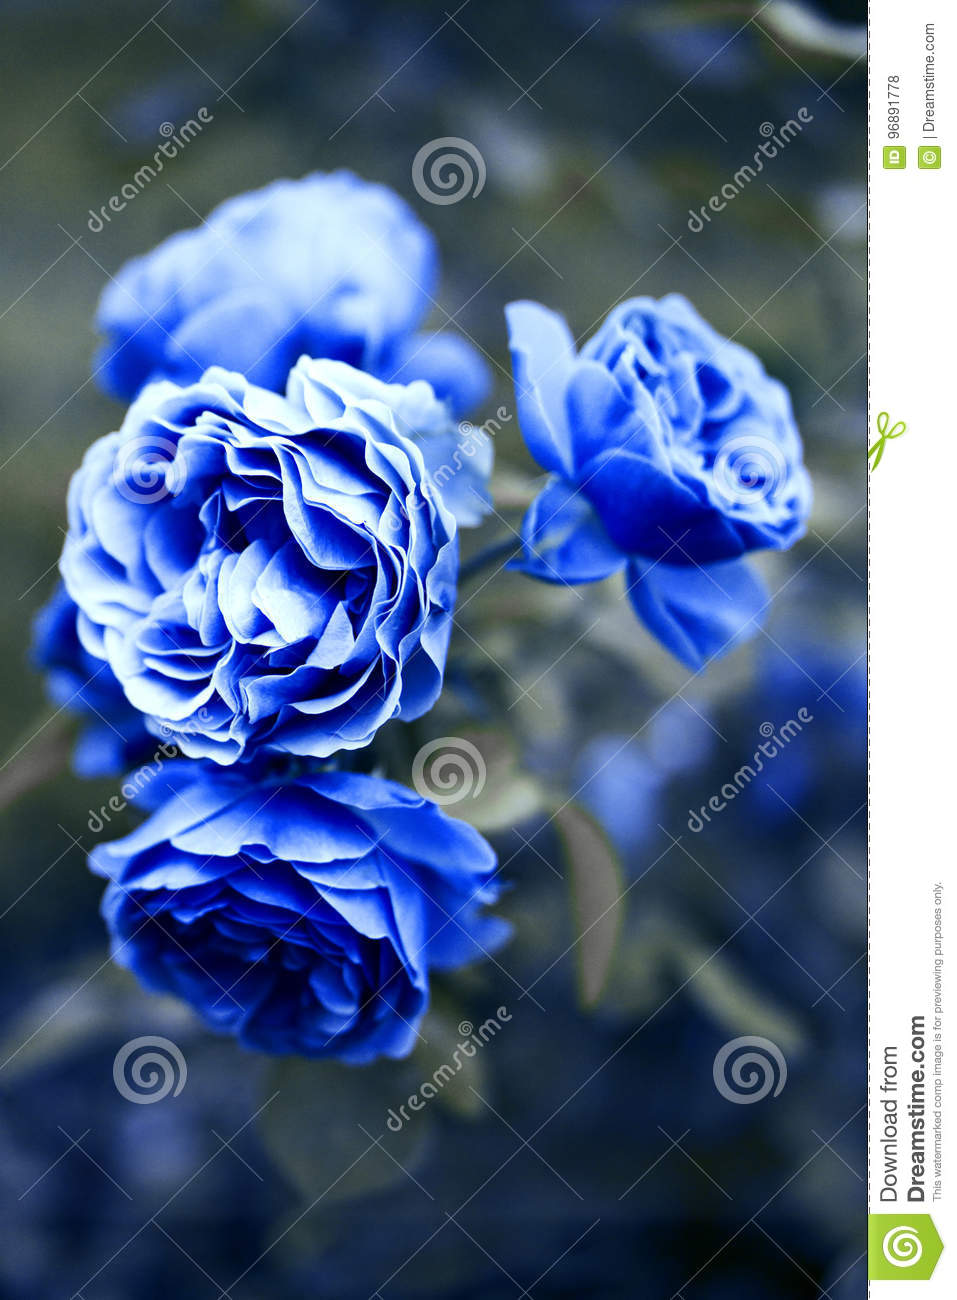 Blue roses blooming in the garden